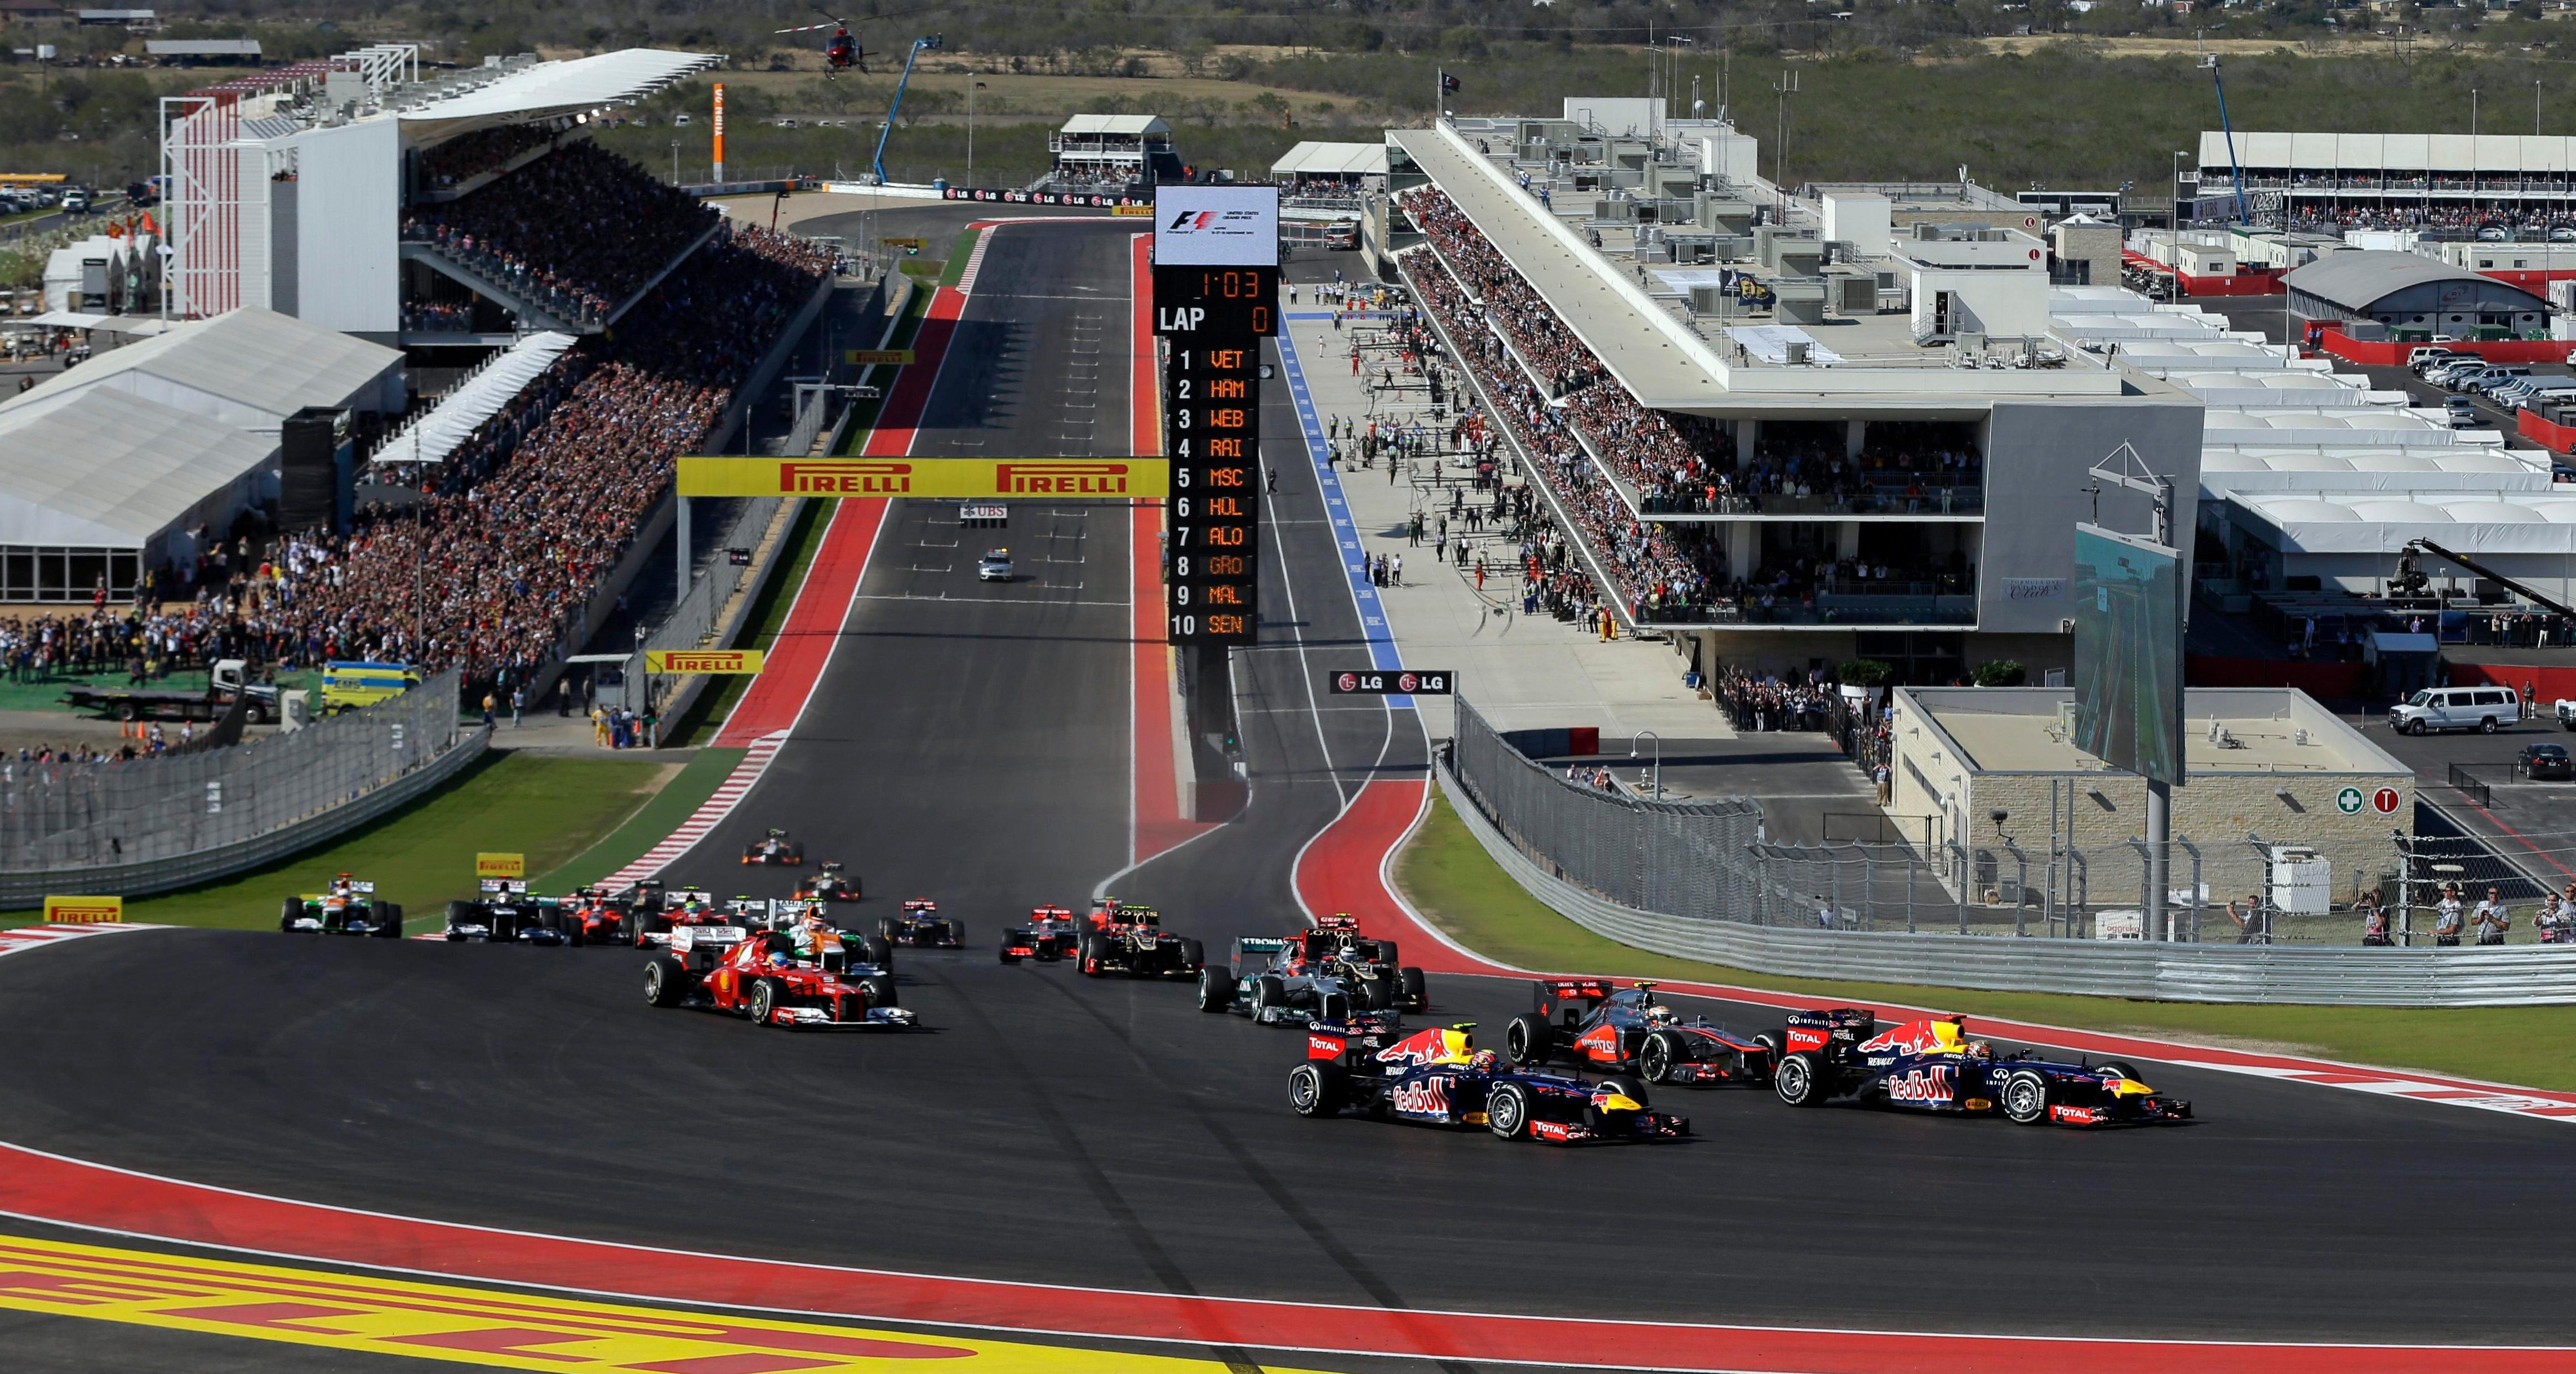 The action takes place over 56 laps of the Circuit of The Americas